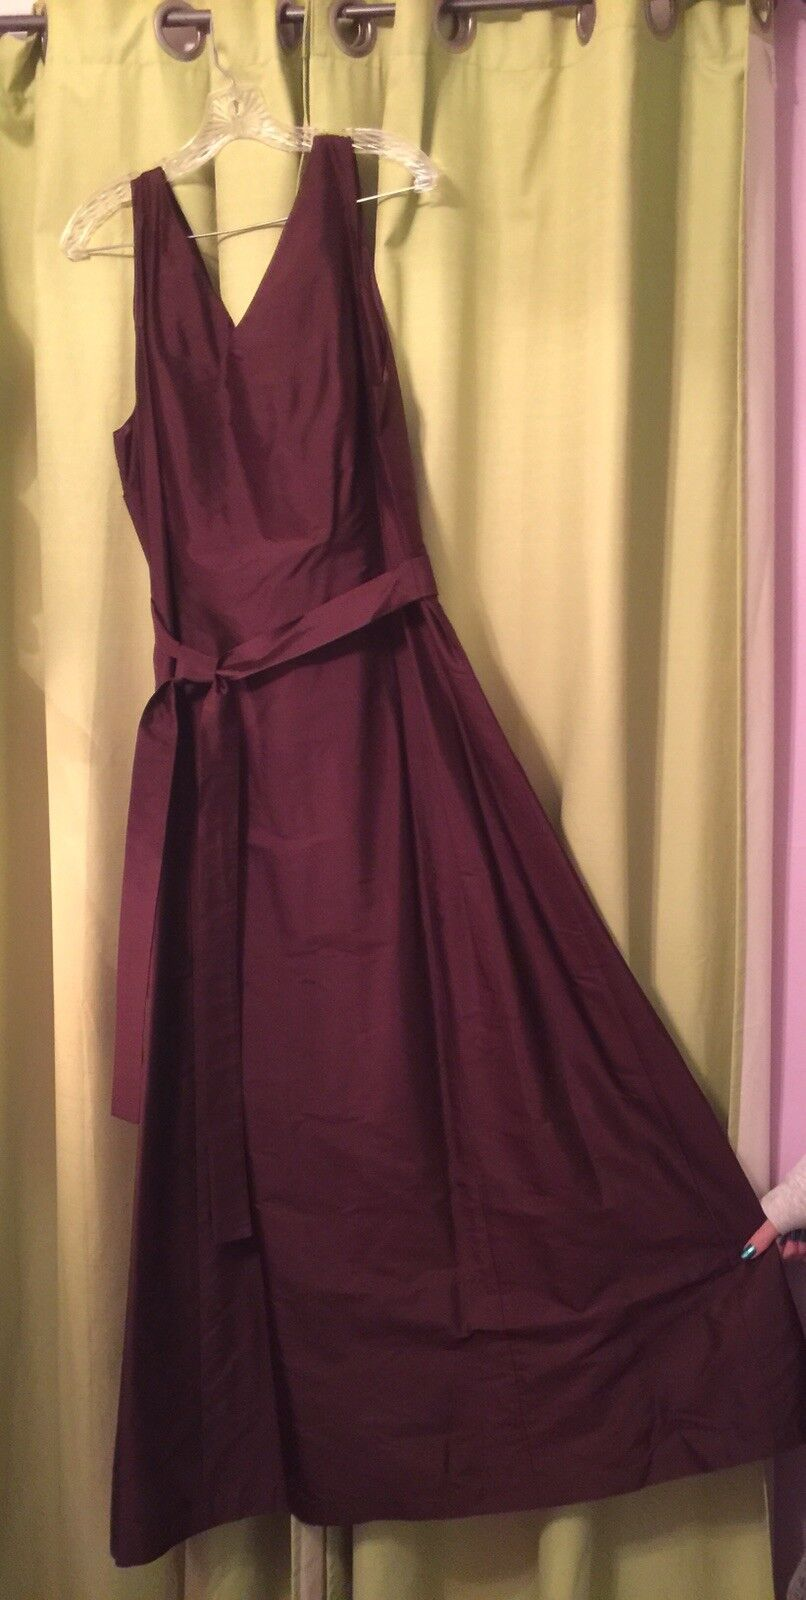 NEW NEW NEW Aria 100% silk dress gown bridesmaid prom formal women's classic FREE SHIP be890c